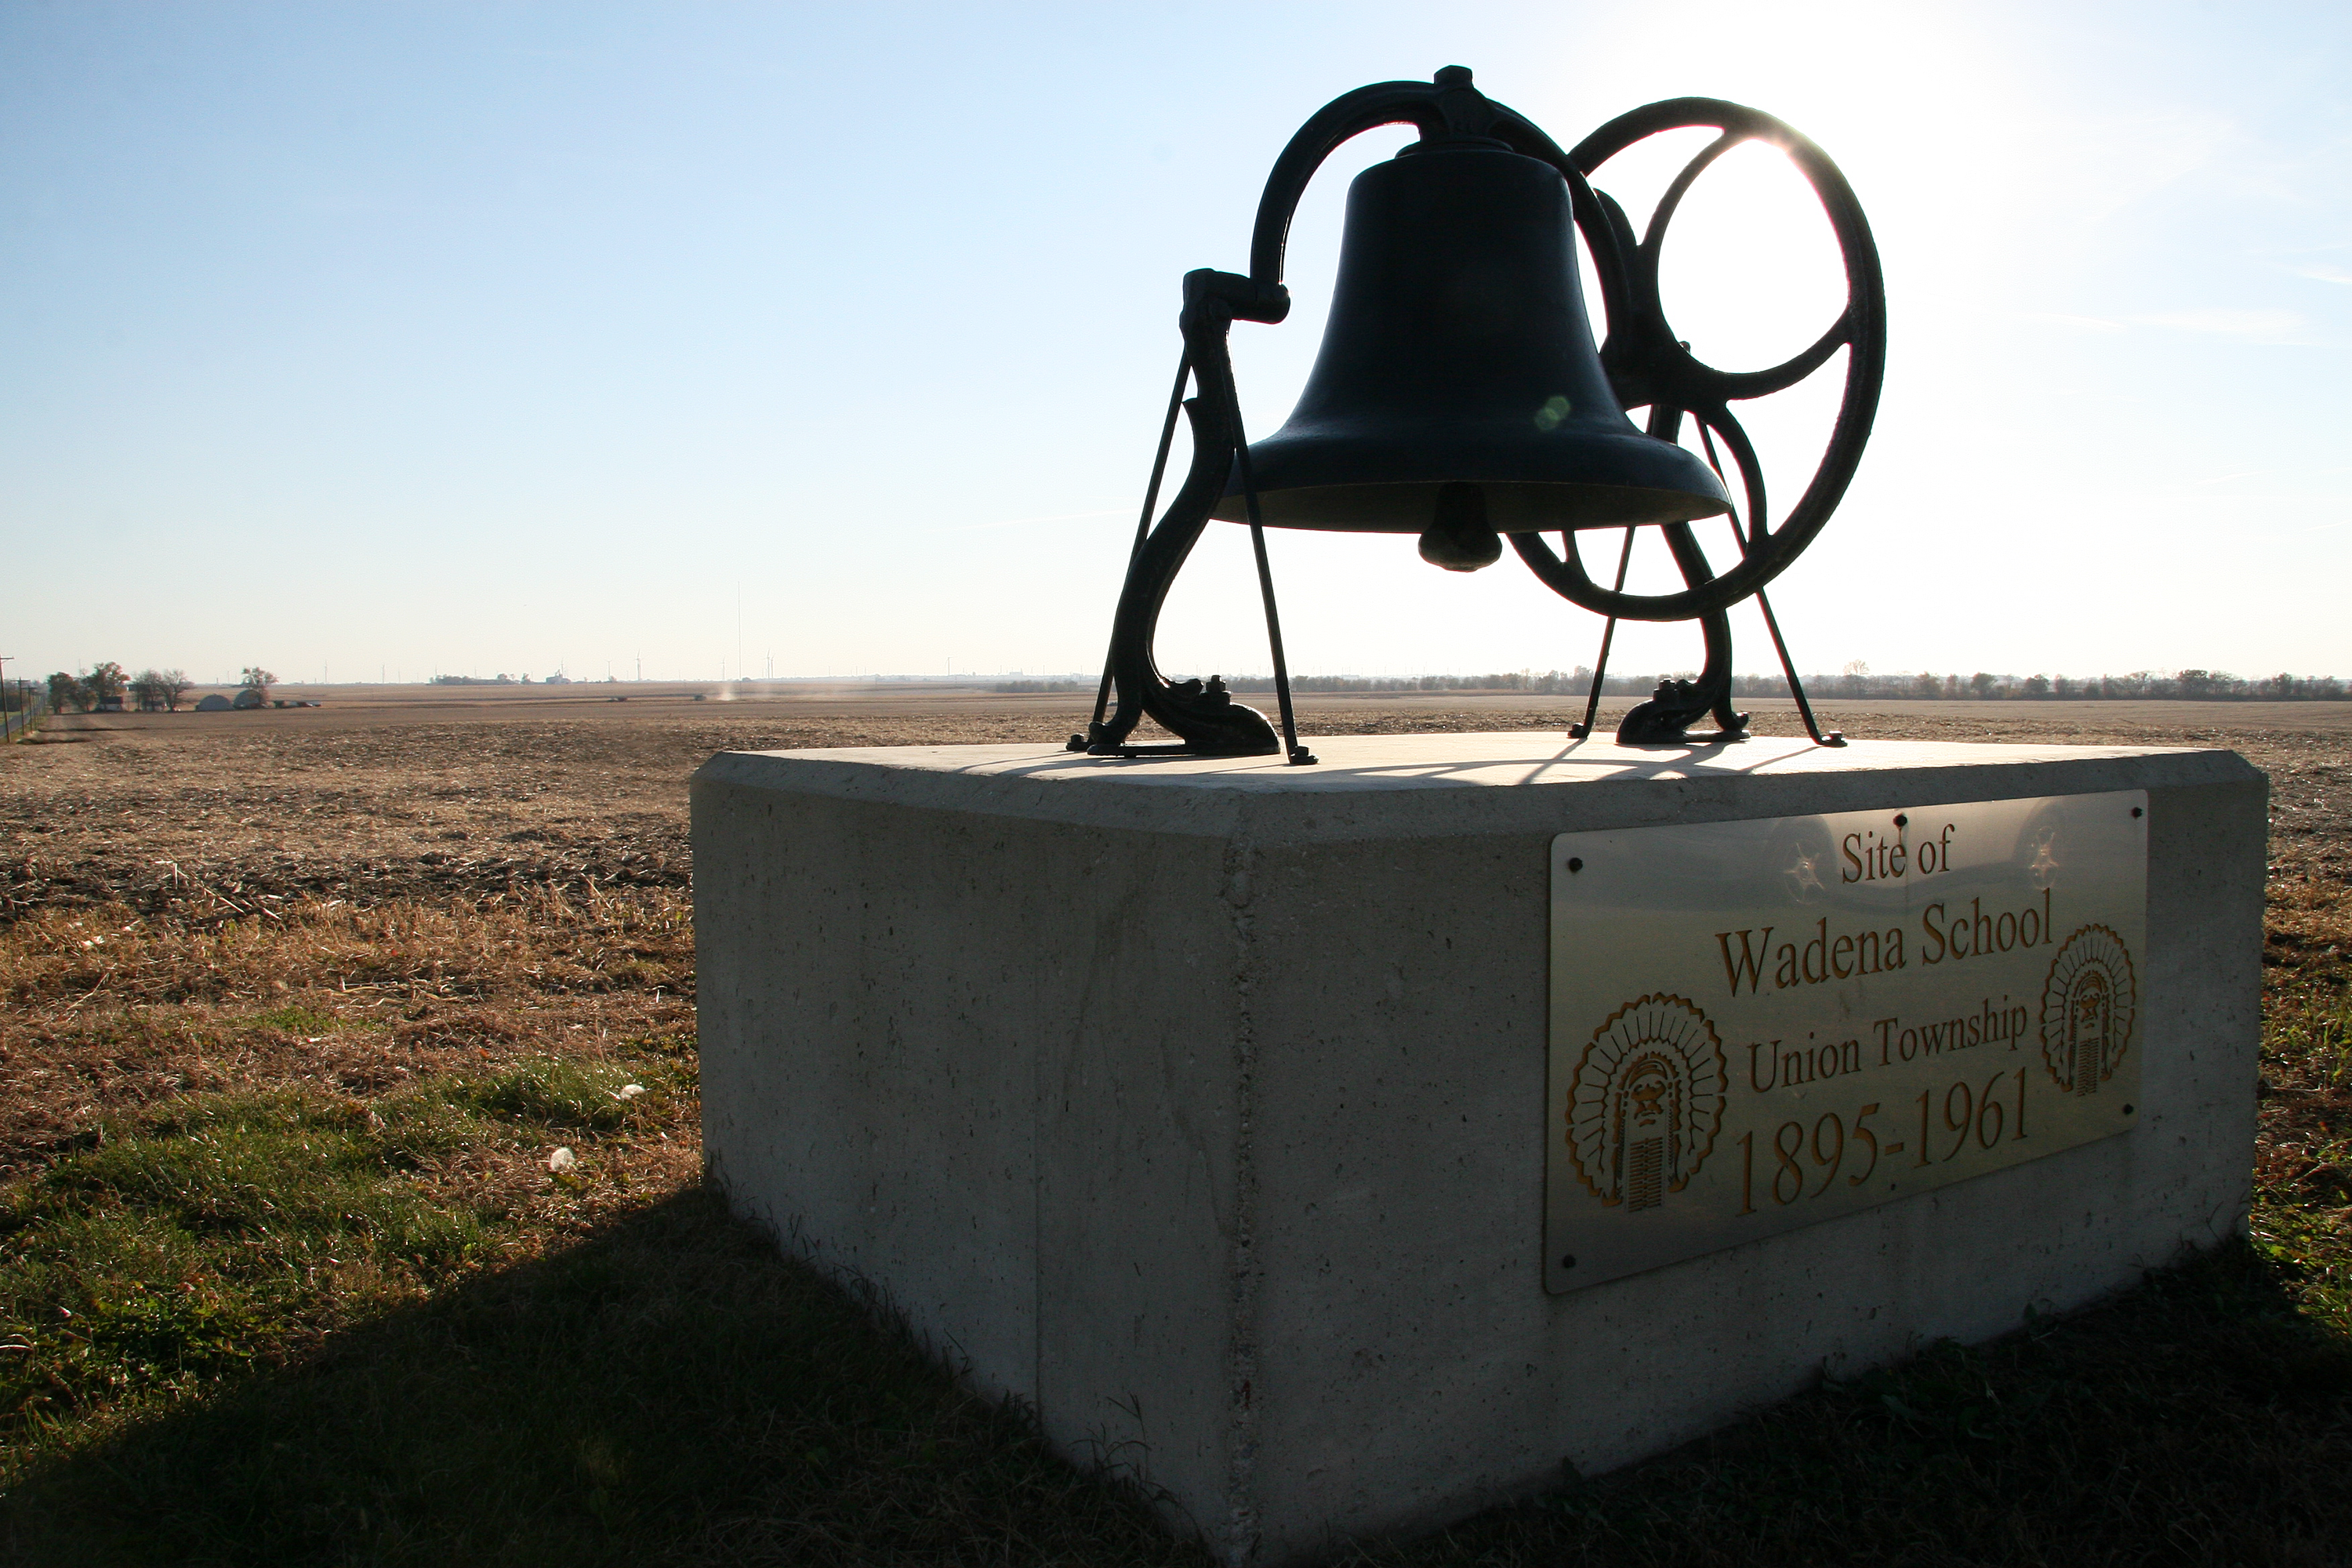 File:Wadena School monument.png - Wikimedia Commonswadena township